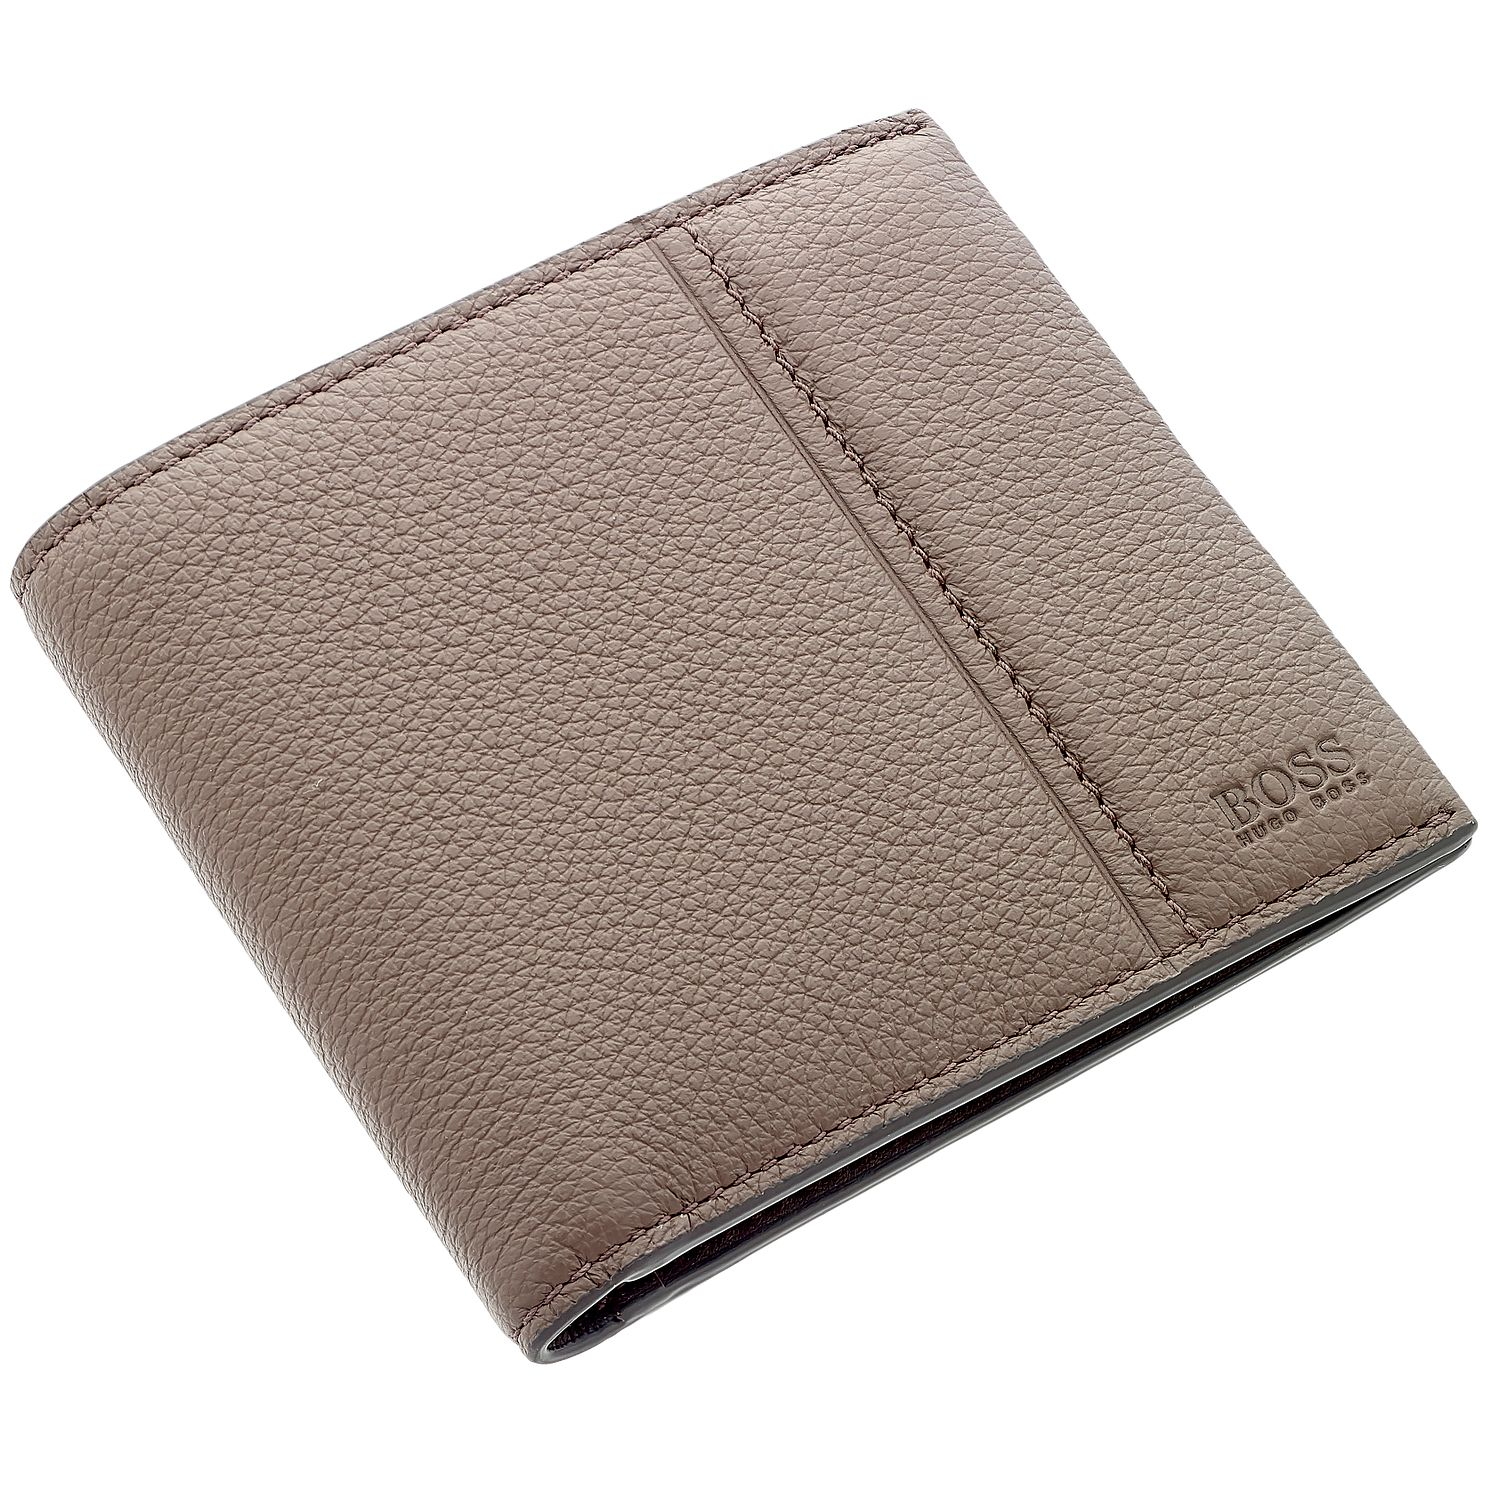 BOSS Brown Leather Travel Wallet - Product number 3796698